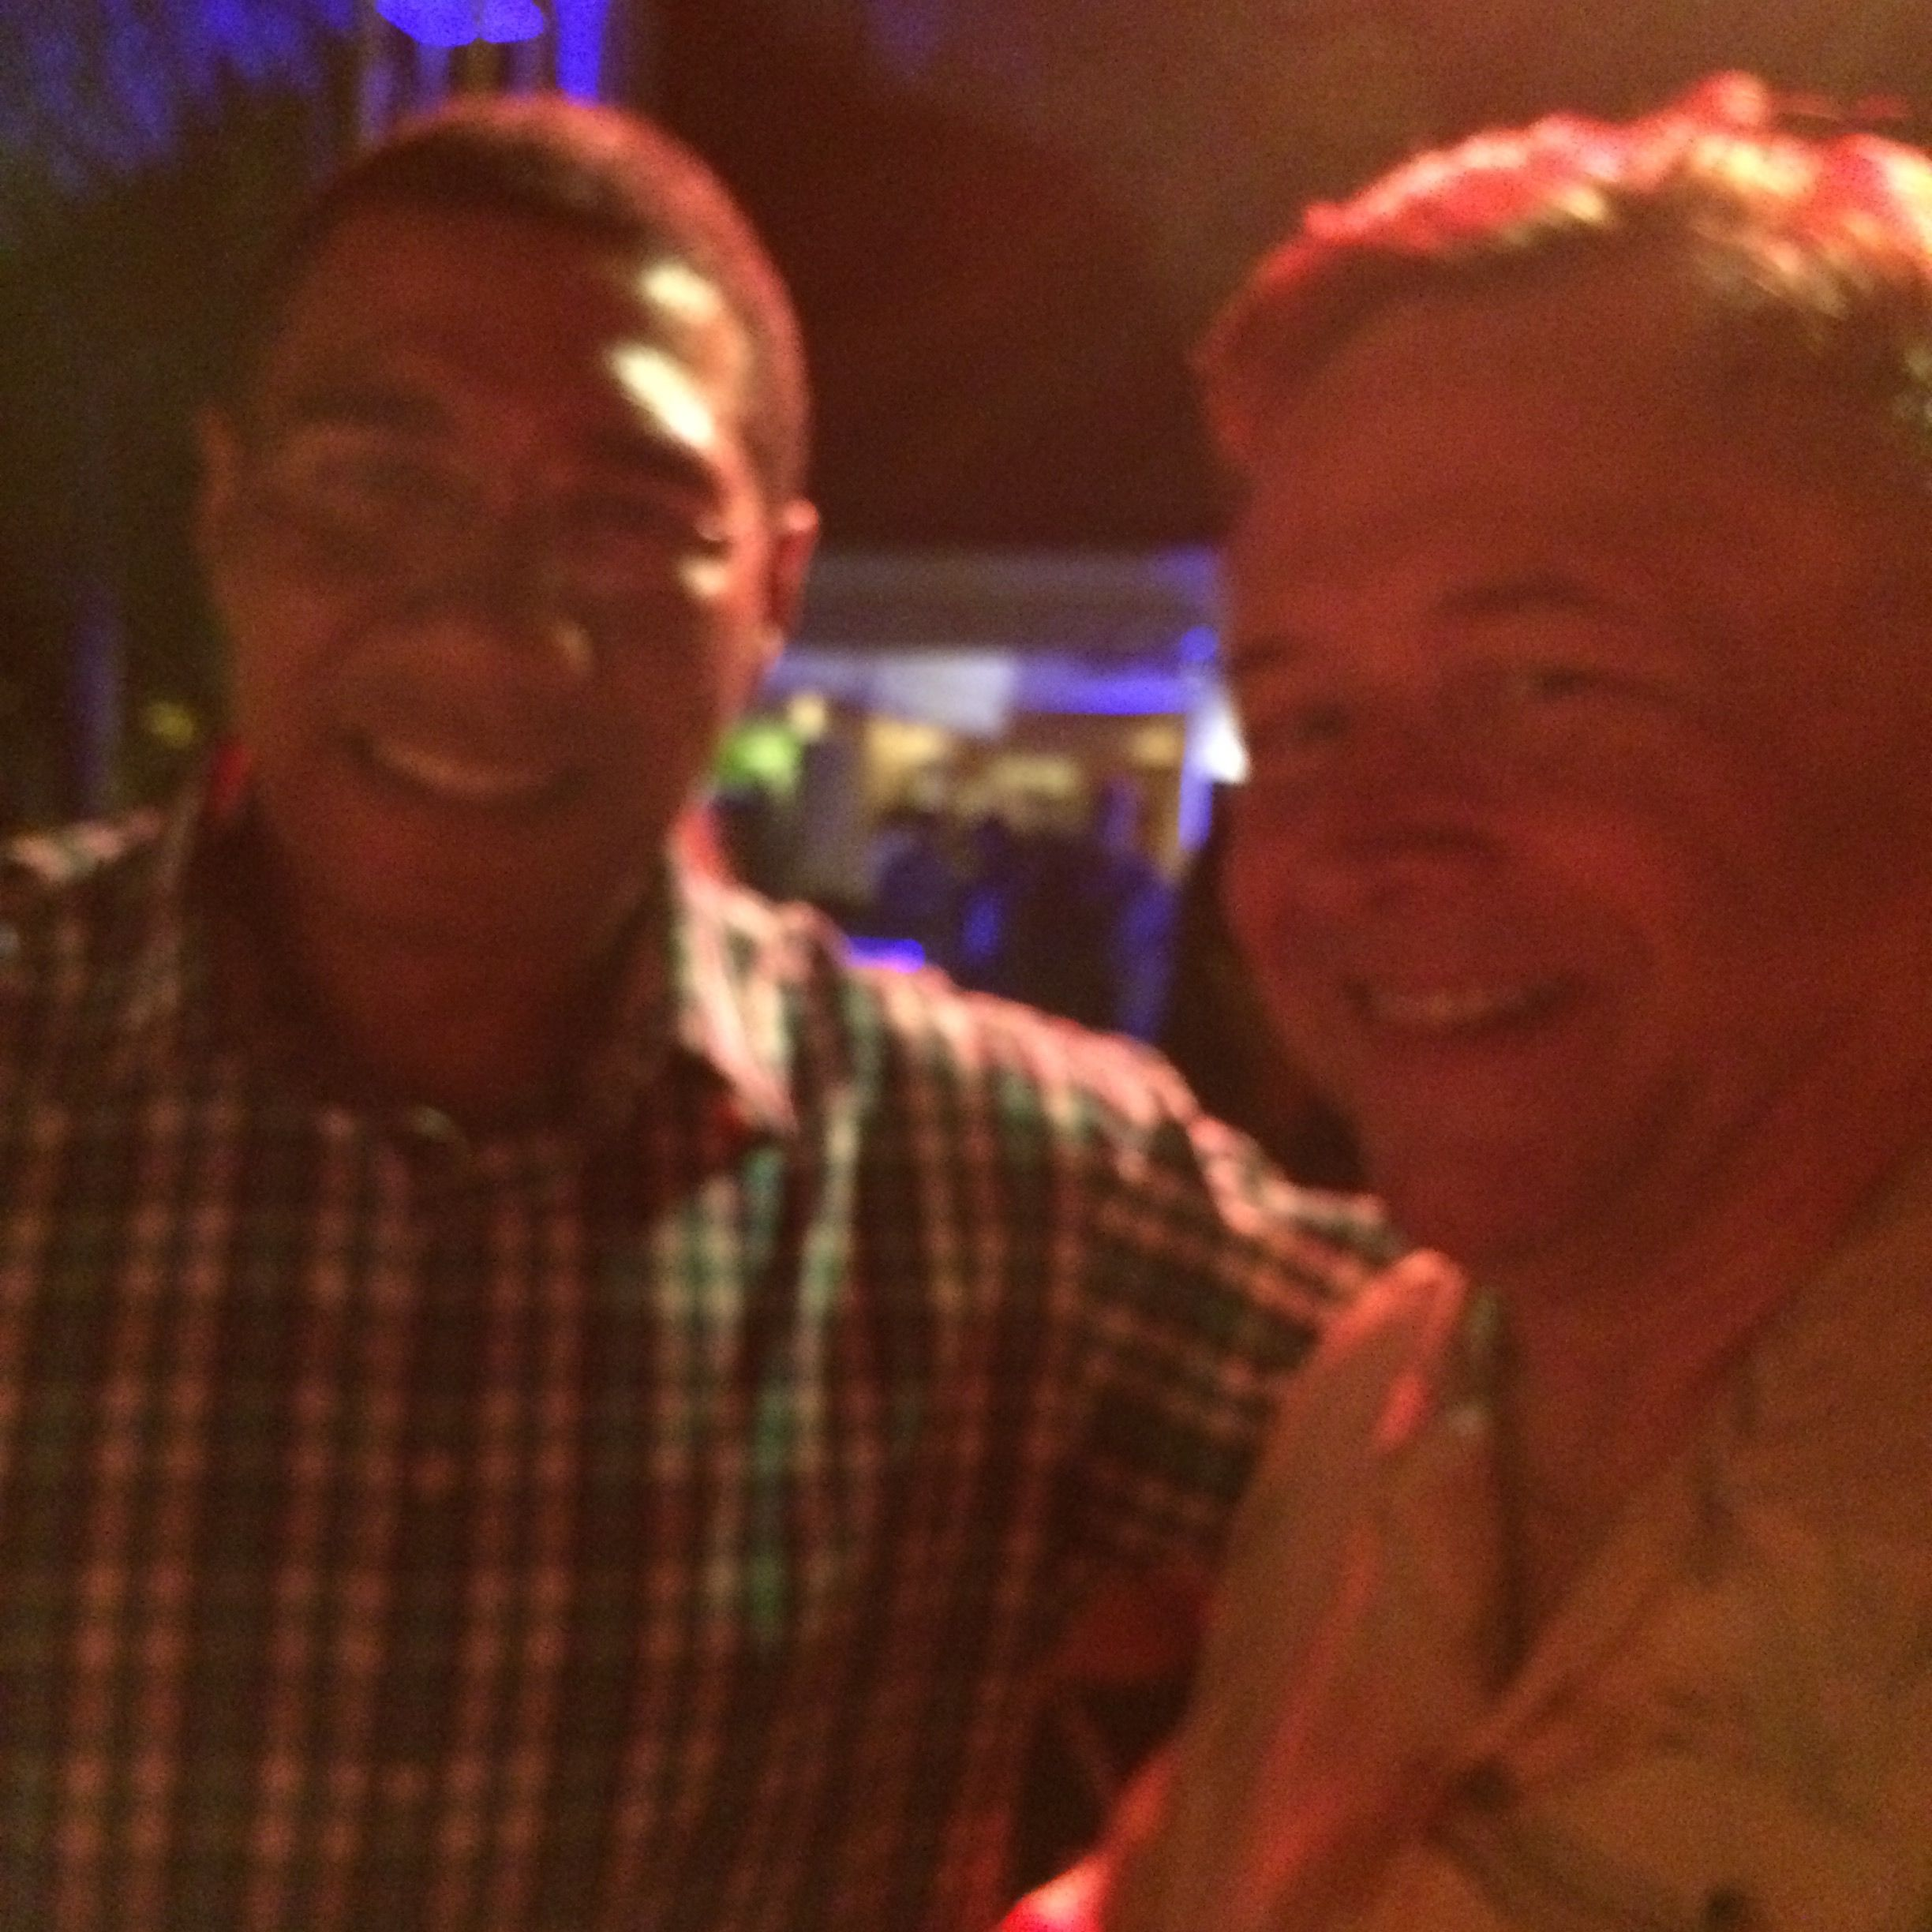 JAMAICAN PRIME MINISTER ANDREW HOLNESS SOCIALIZING WITH DUANE BOISE, PRES./CEO OF EMED GROUND & AIR AMBULANCE SERVICE WWW.AIRAMBULANCEJAMAICA.COM